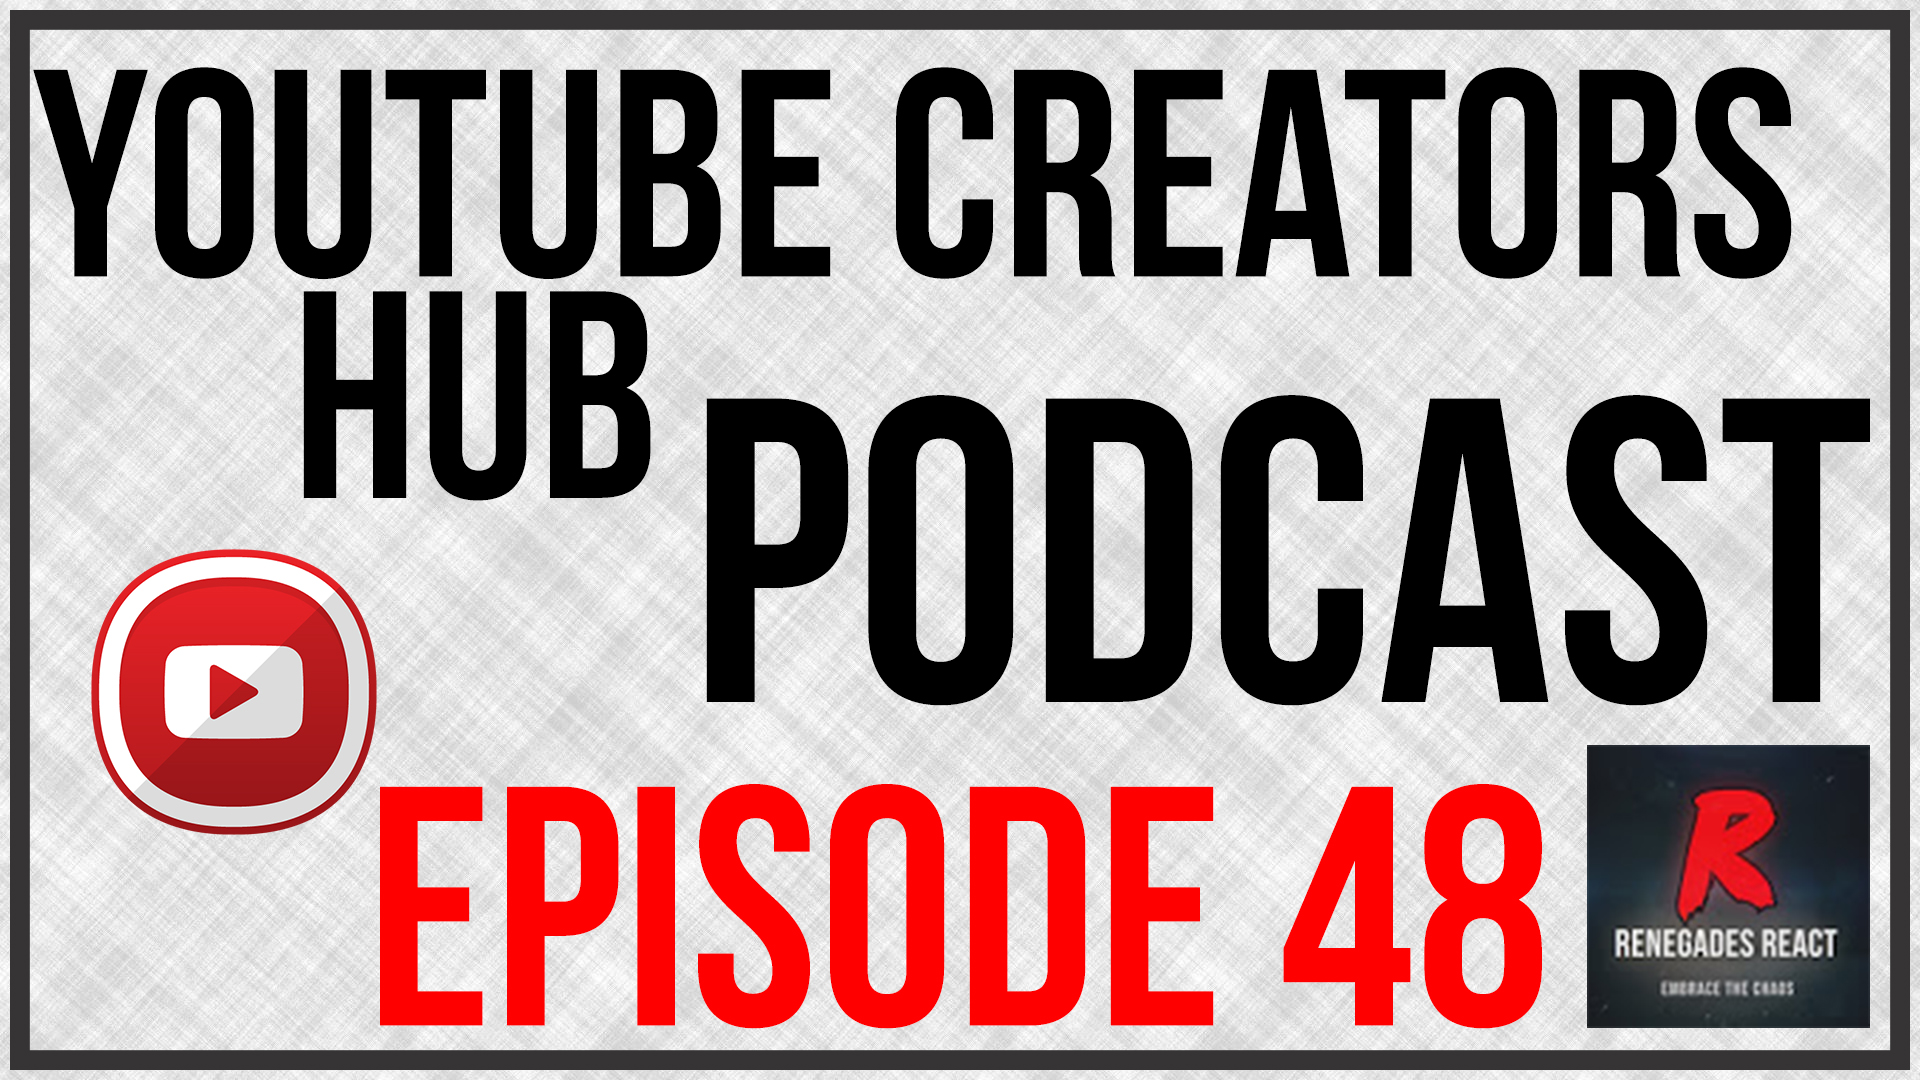 YouTube Creators Hub Podcast Episode 48